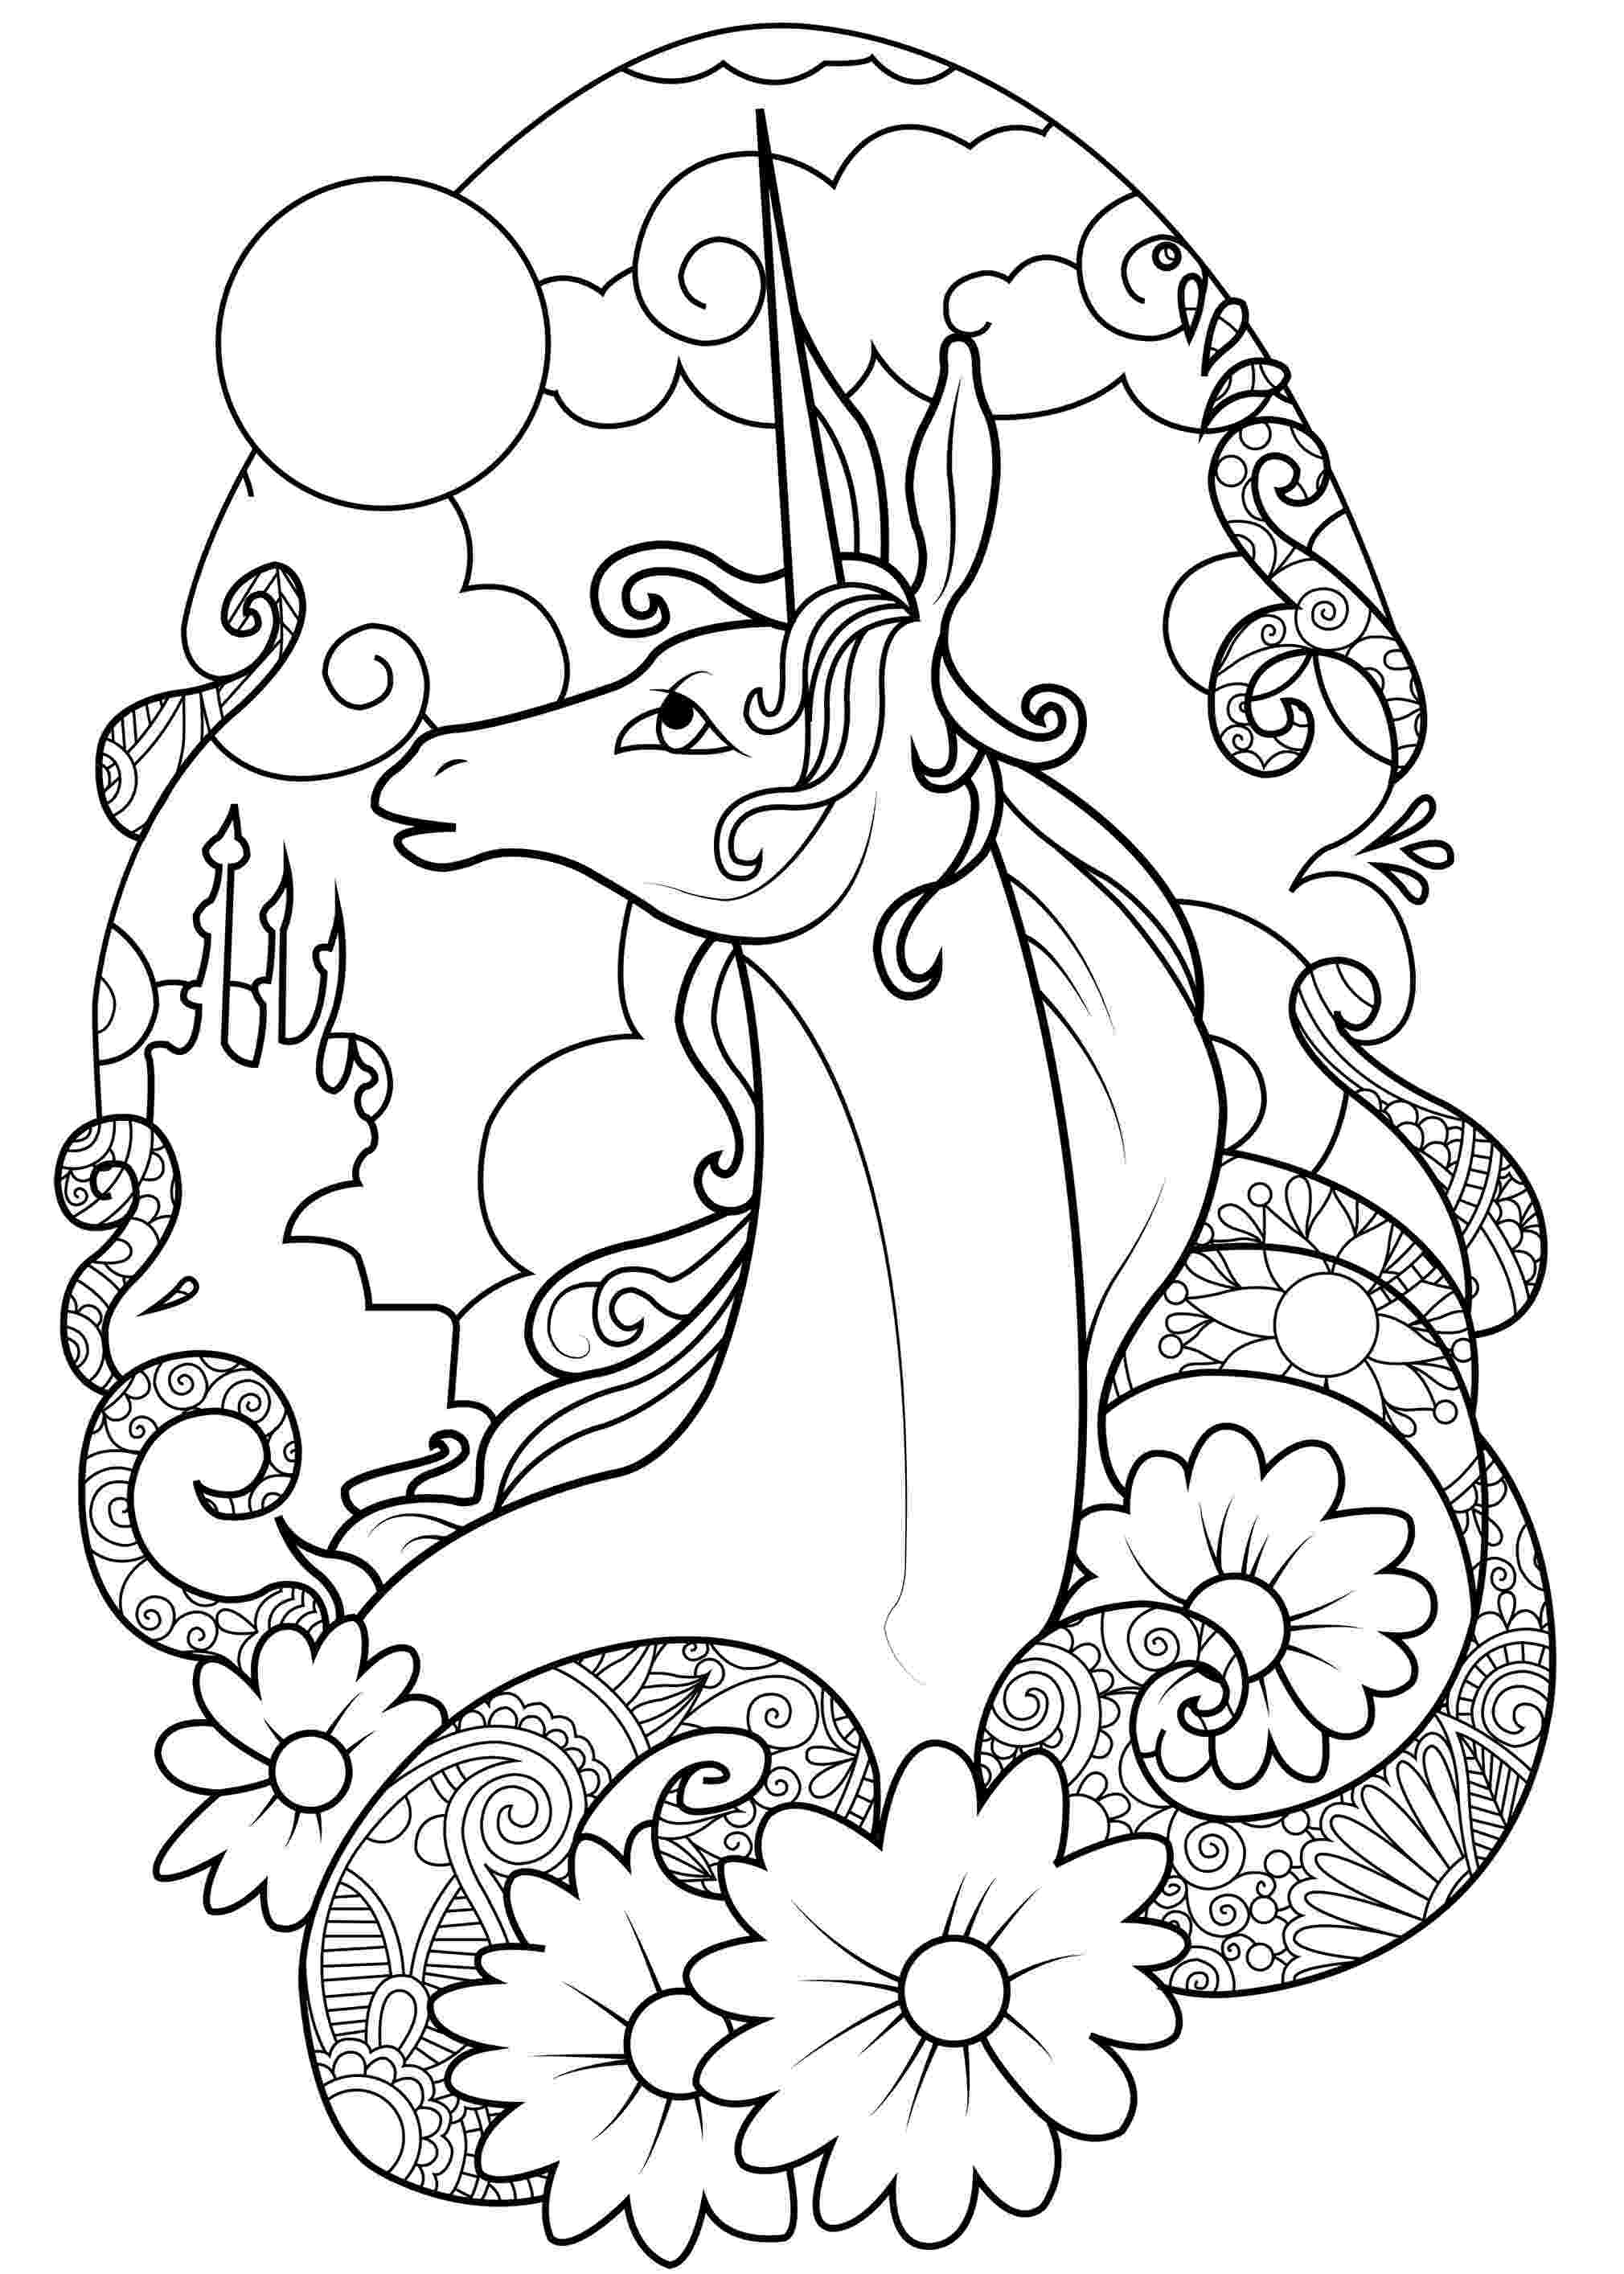 unicorn coloring pages for adults unicorn christmas coloring page adult color book art fantasy unicorn adults coloring for pages